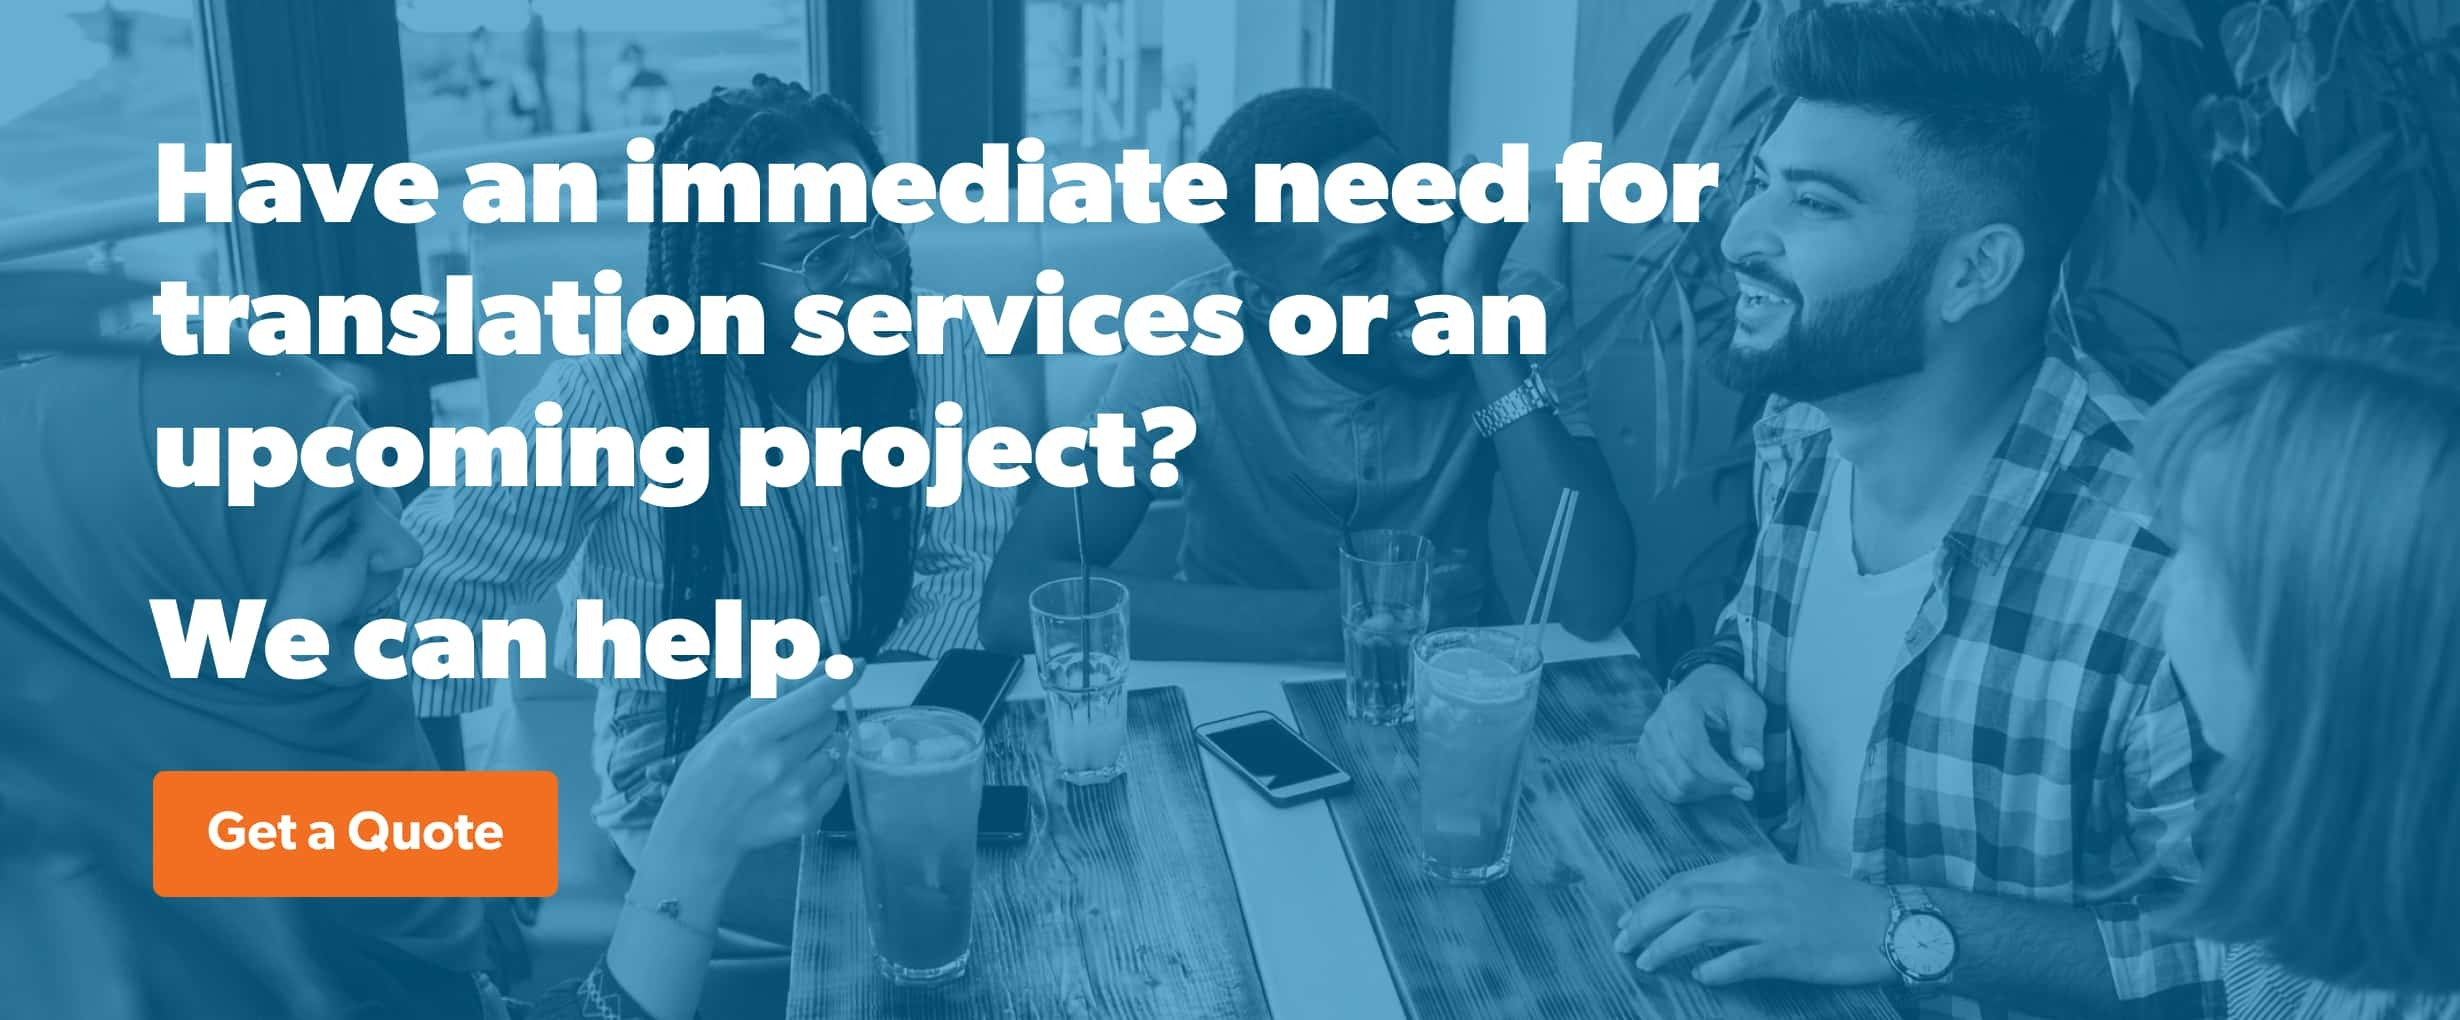 Have an immediate need for translation services or an upcoming project? Get a quote.